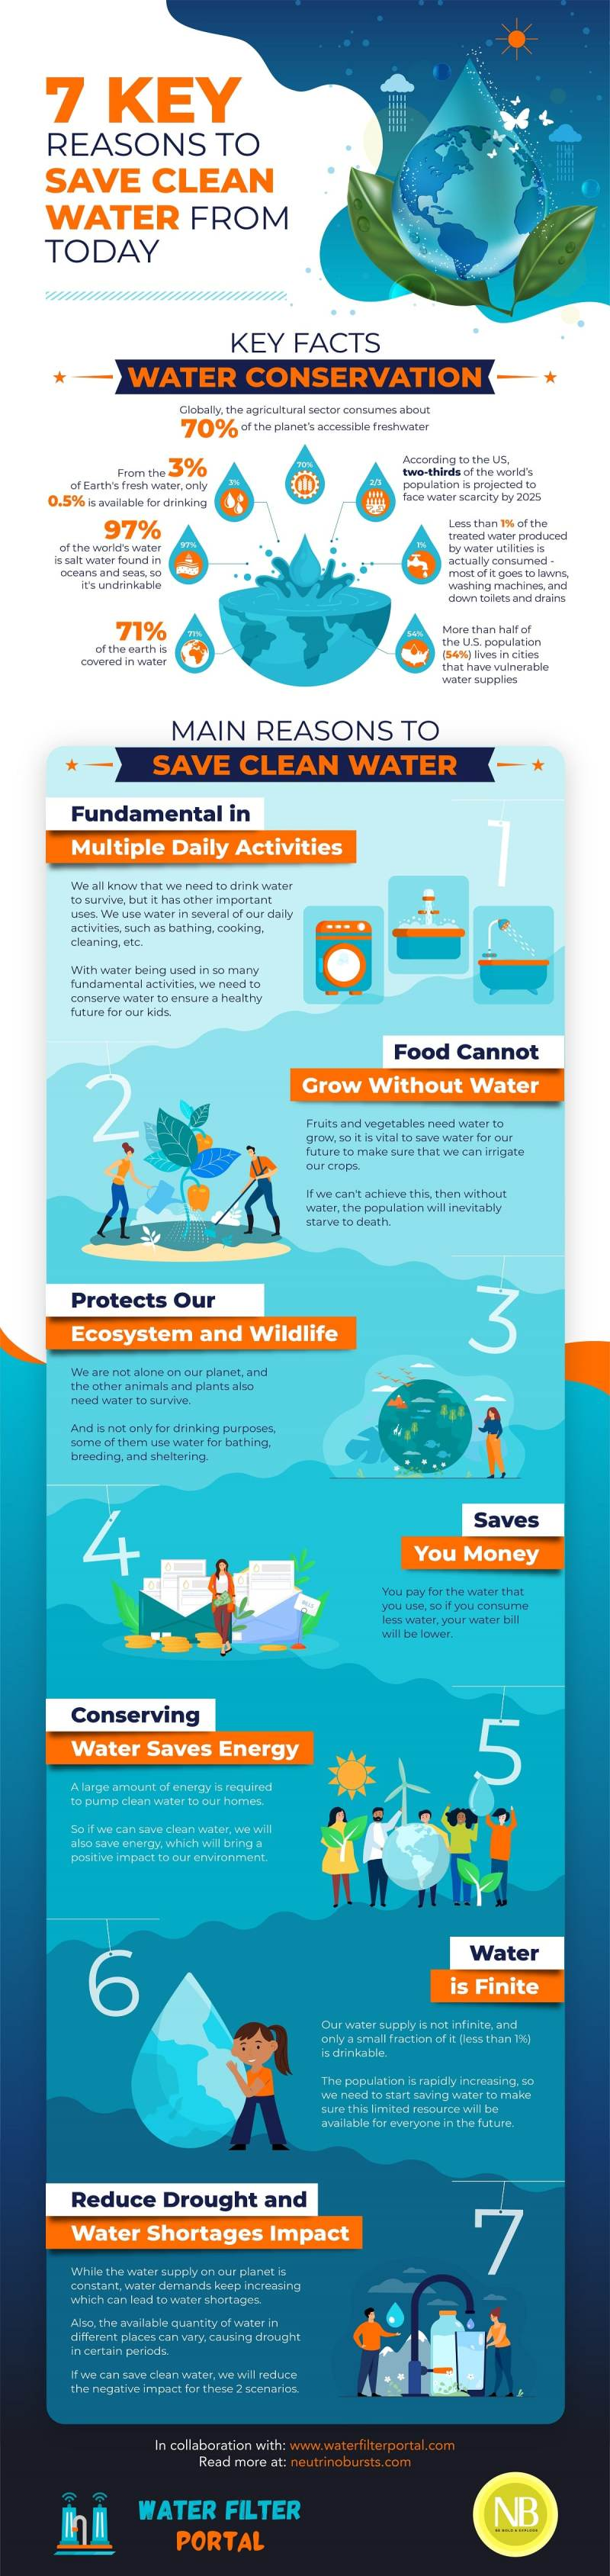 Water conservation key fact and reasons to save clean water